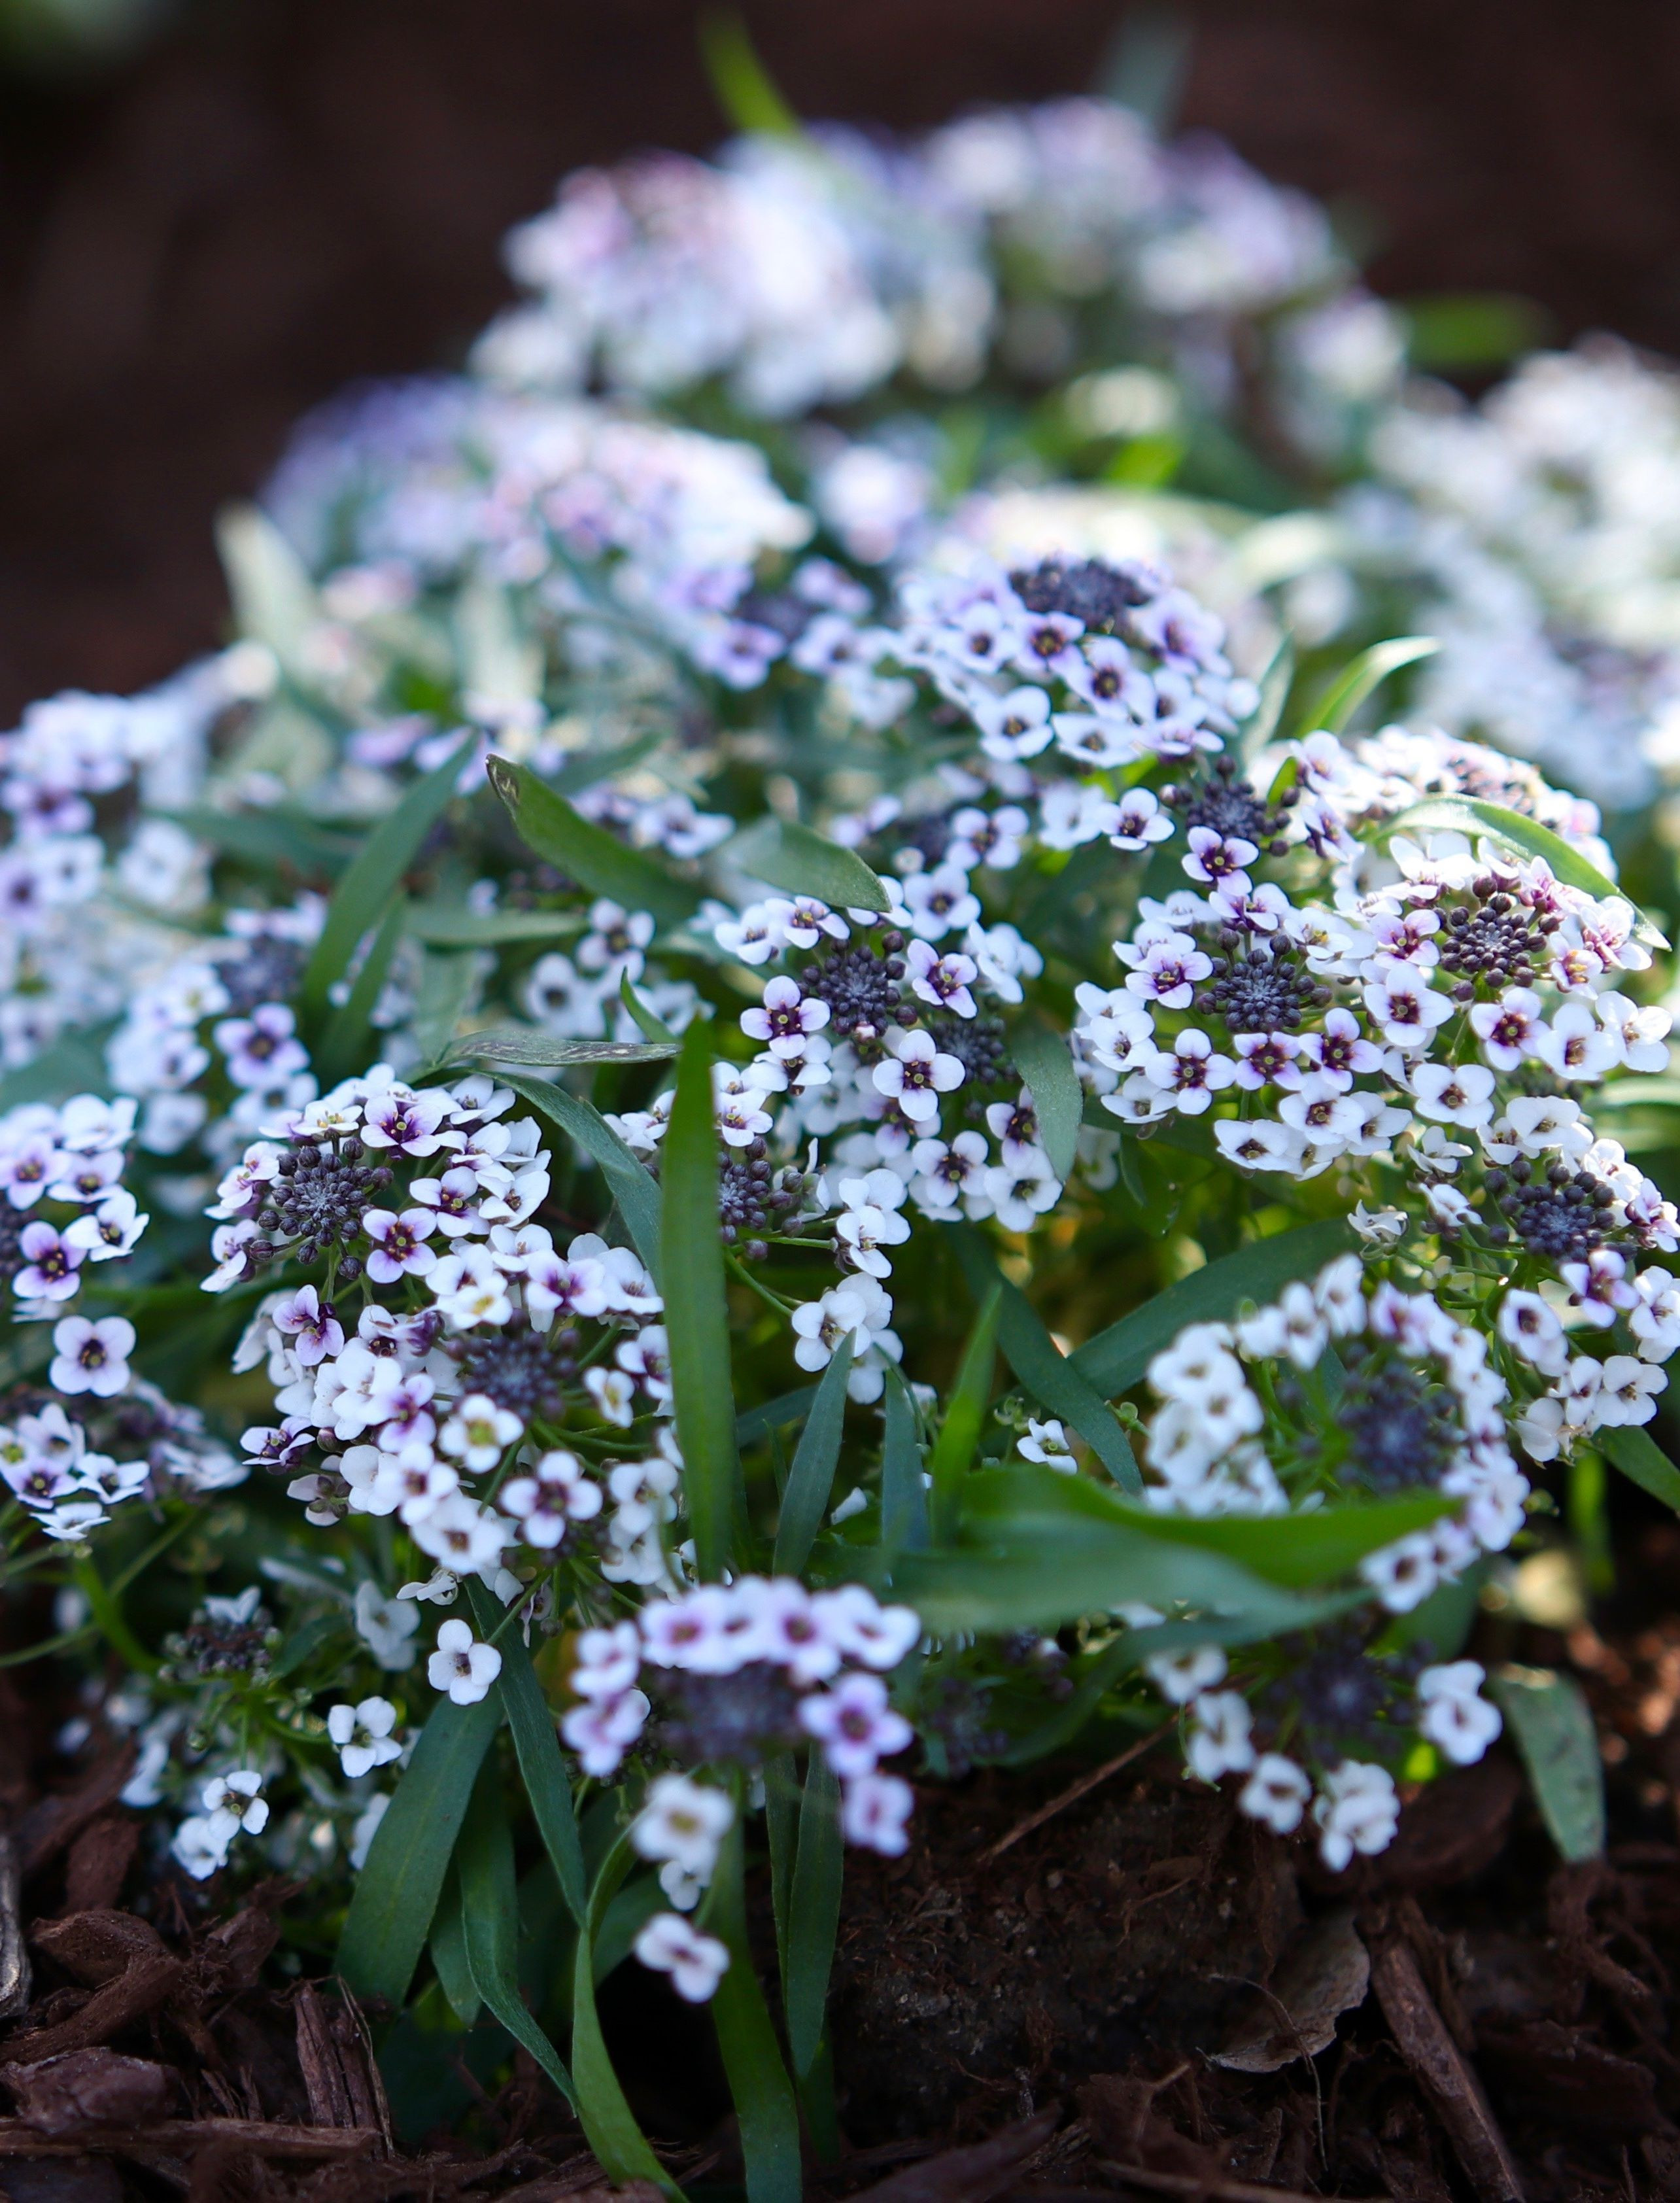 Blushing Princess sweet alyssum might look delicate but she is truly a beast when it